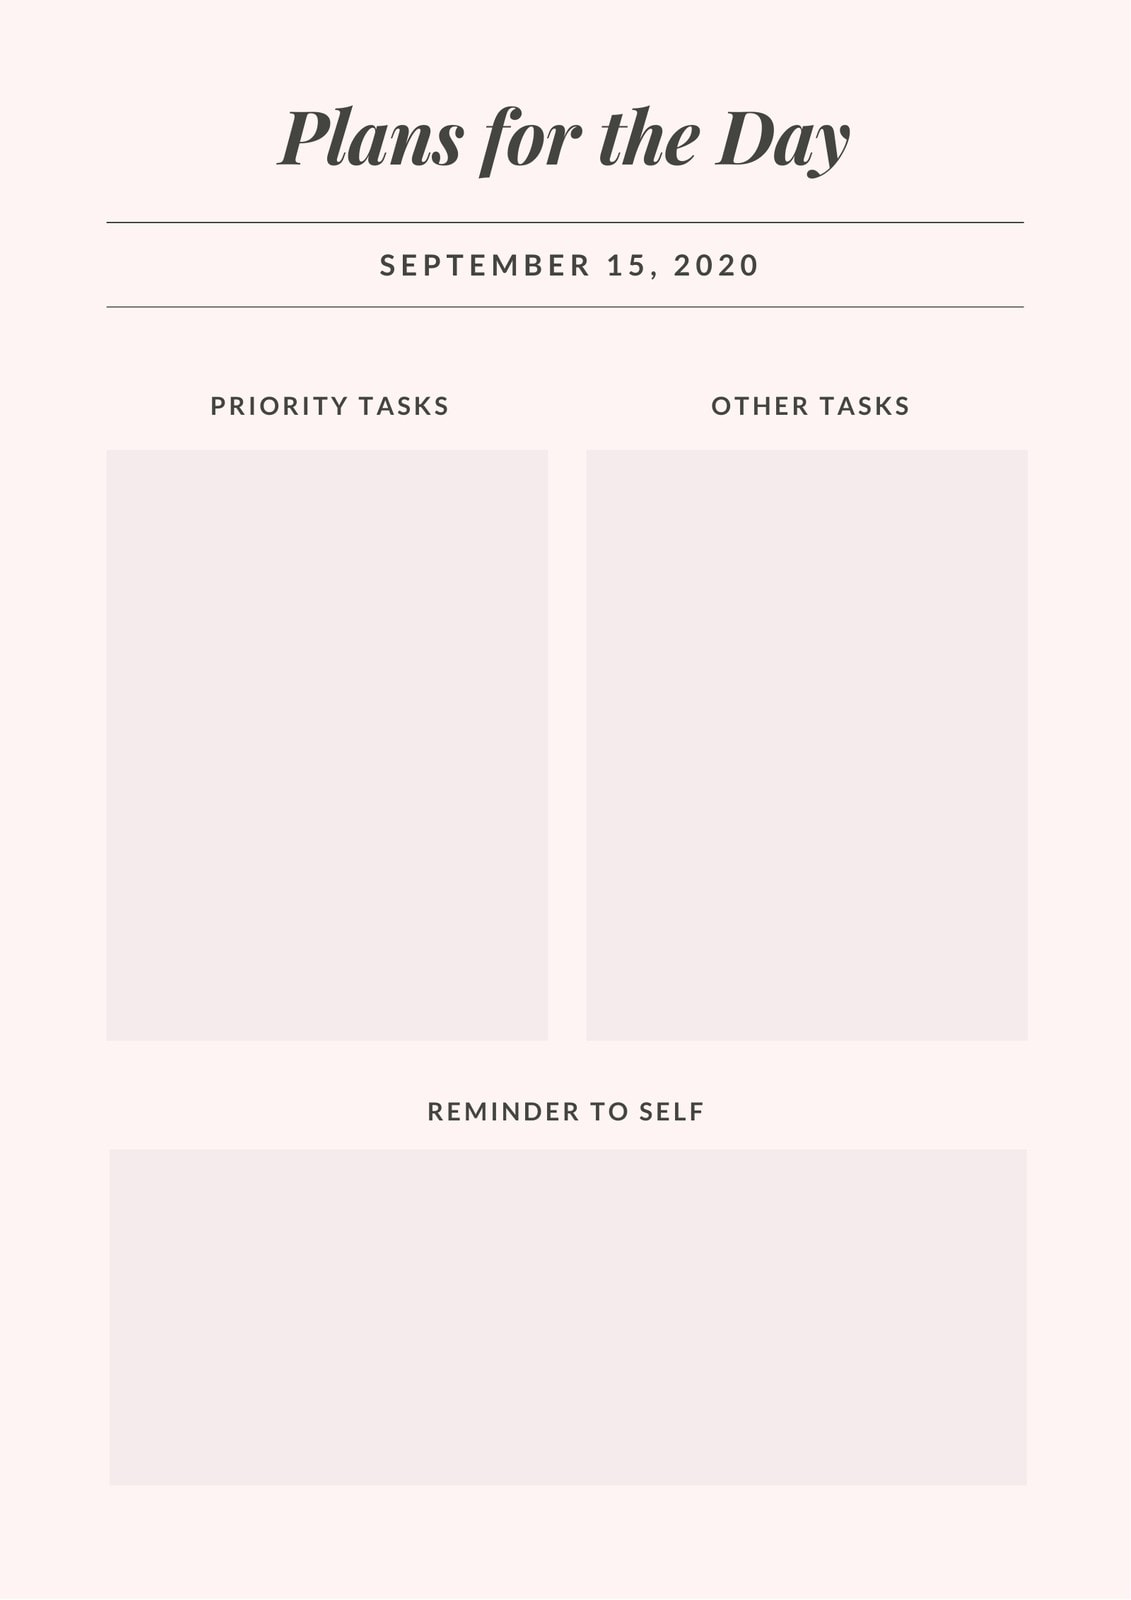 Pink Simple General Daily Planner